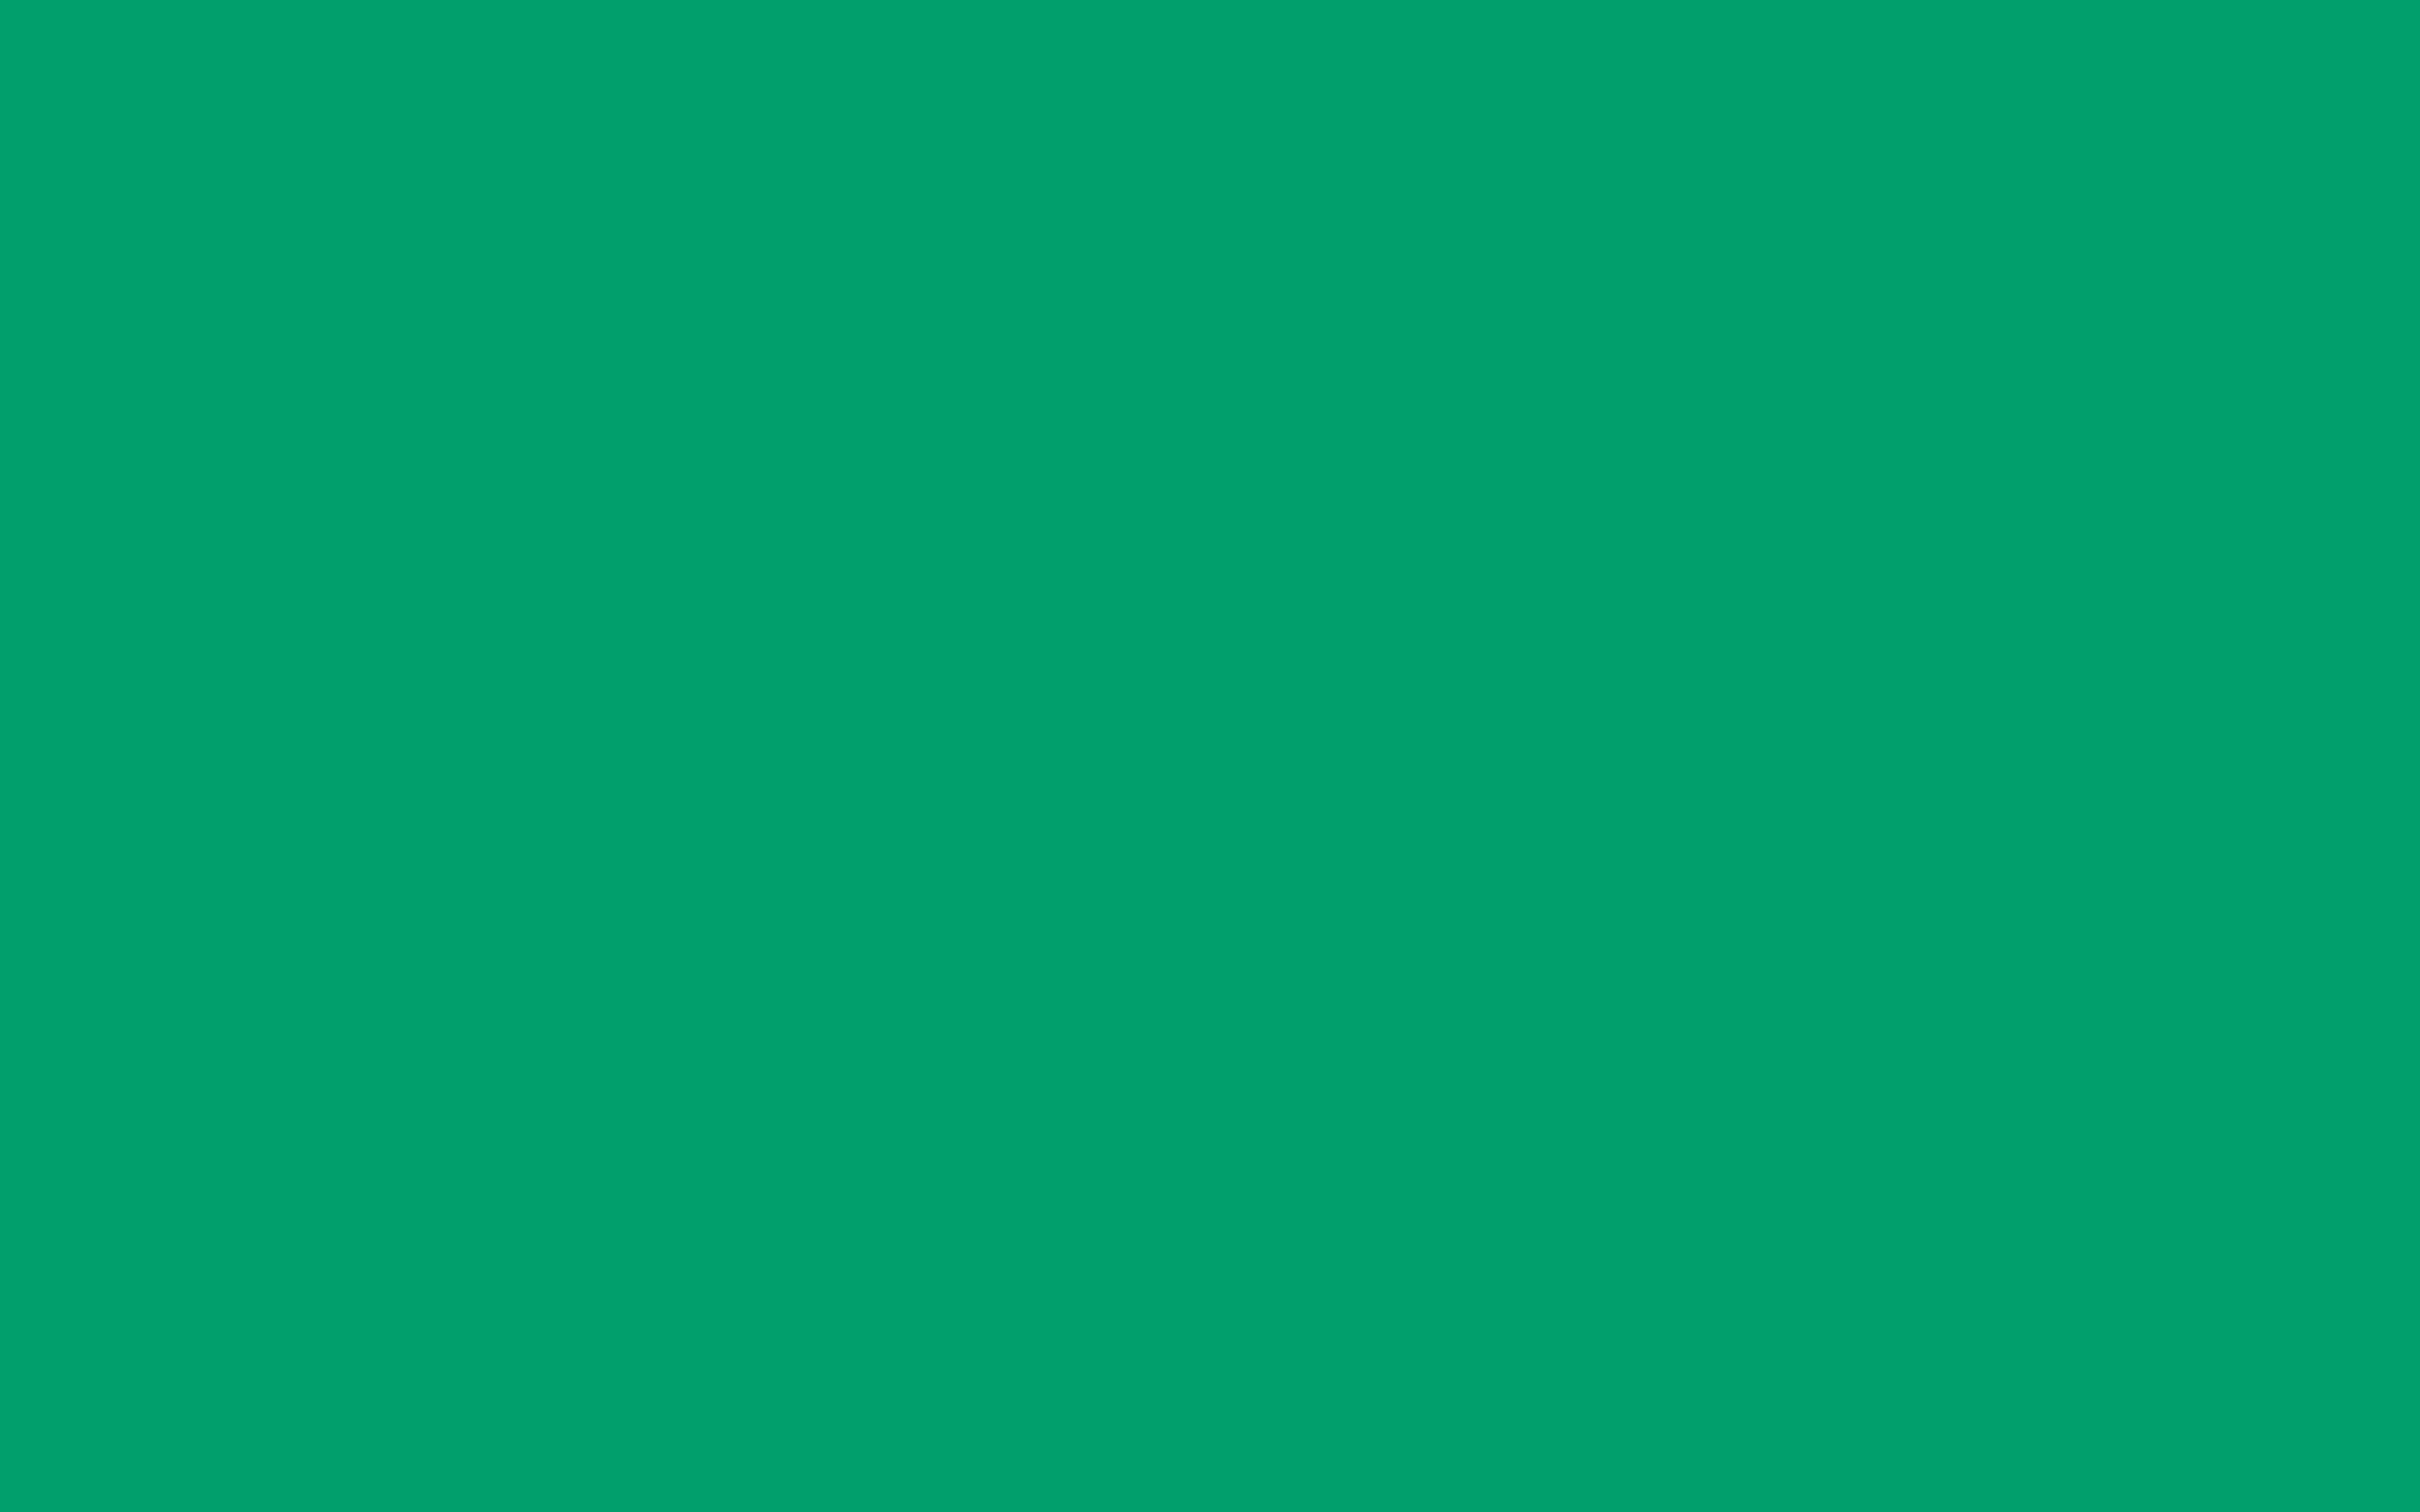 2880x1800 Green NCS Solid Color Background